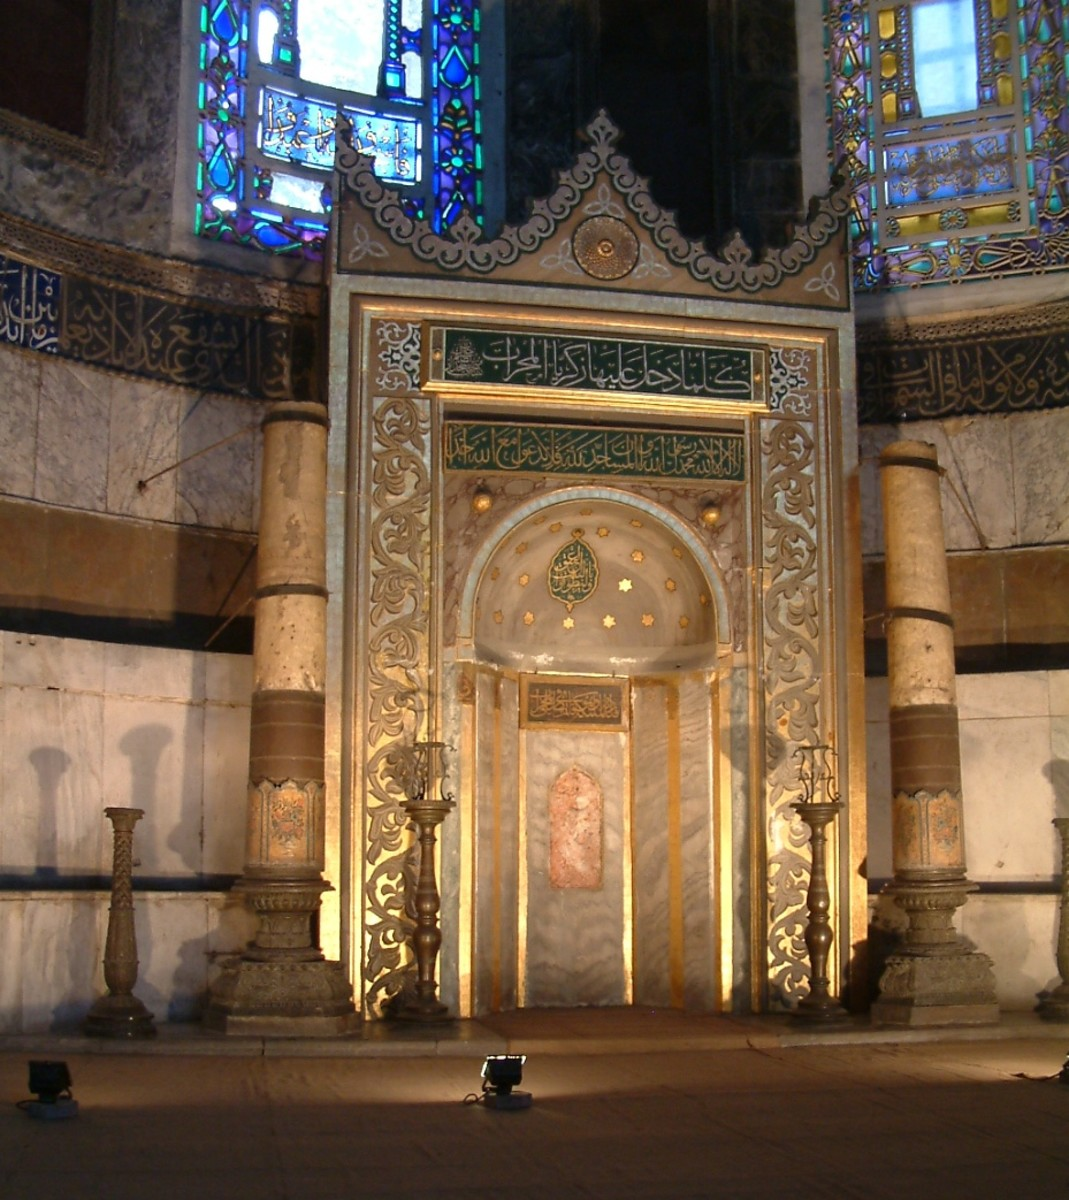 The mihrab (indicating the direction of Mecca) of the Hagia Sofia when it was an Islamic mosque.